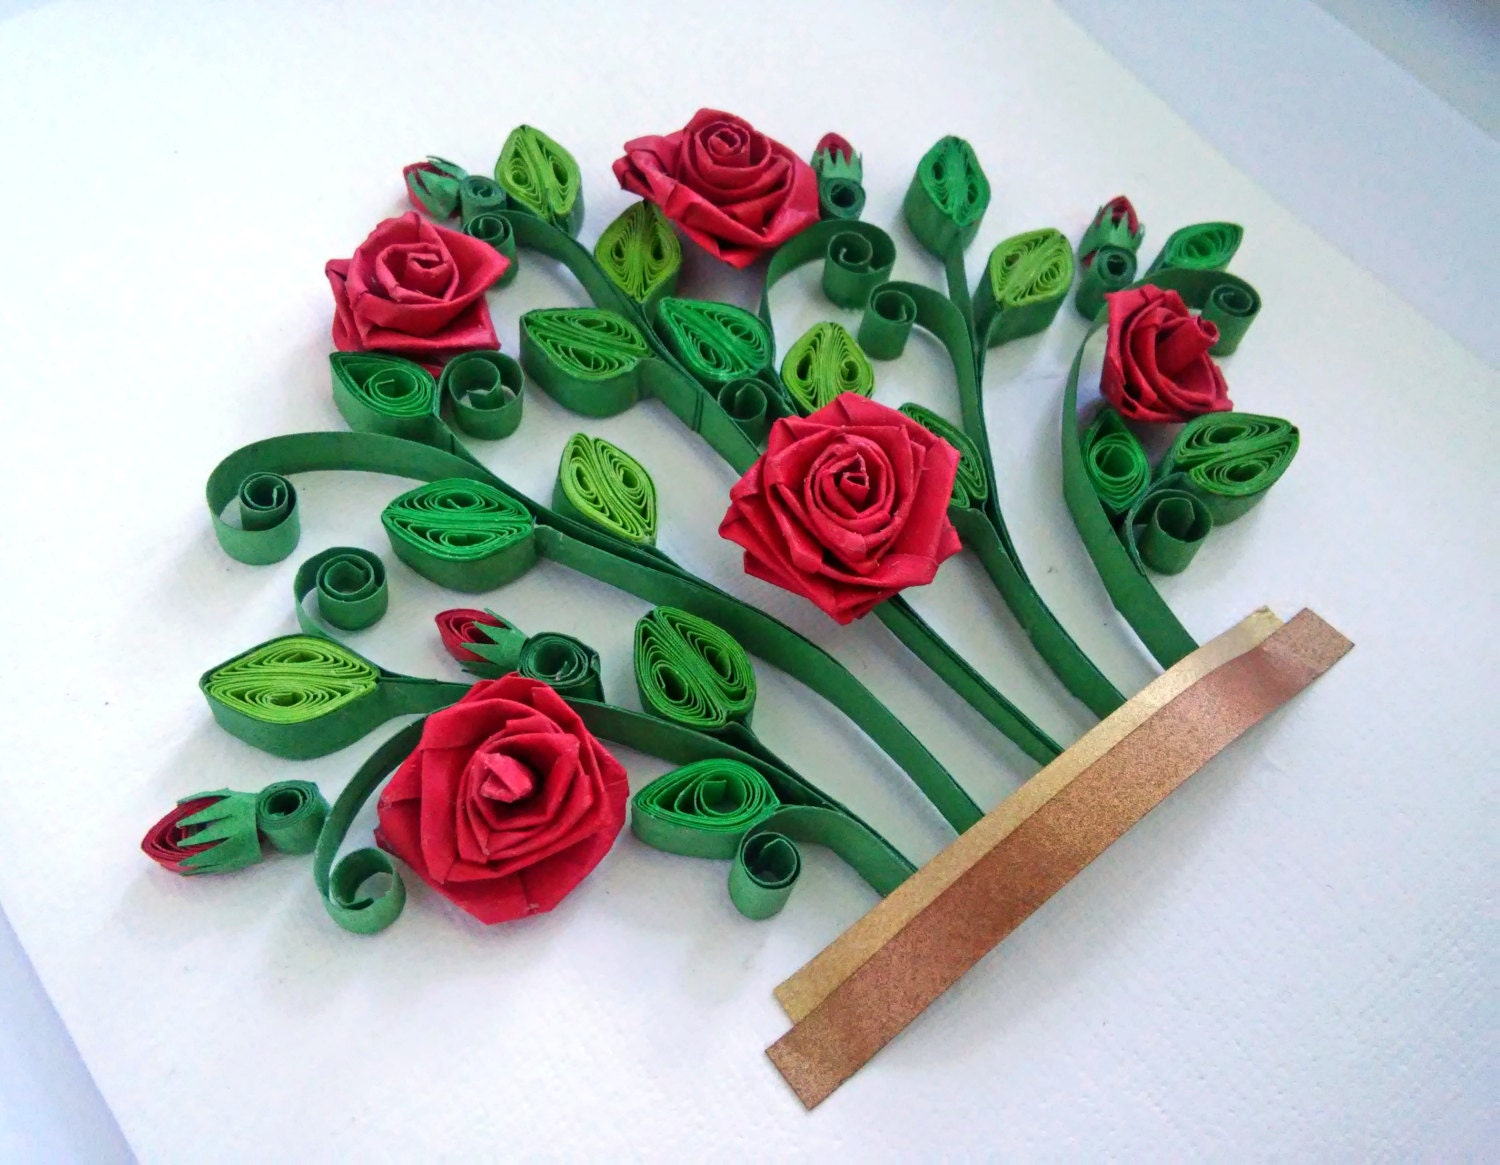 Red roses bush quilling paper art quilling shadow box wall for Quilling paper art